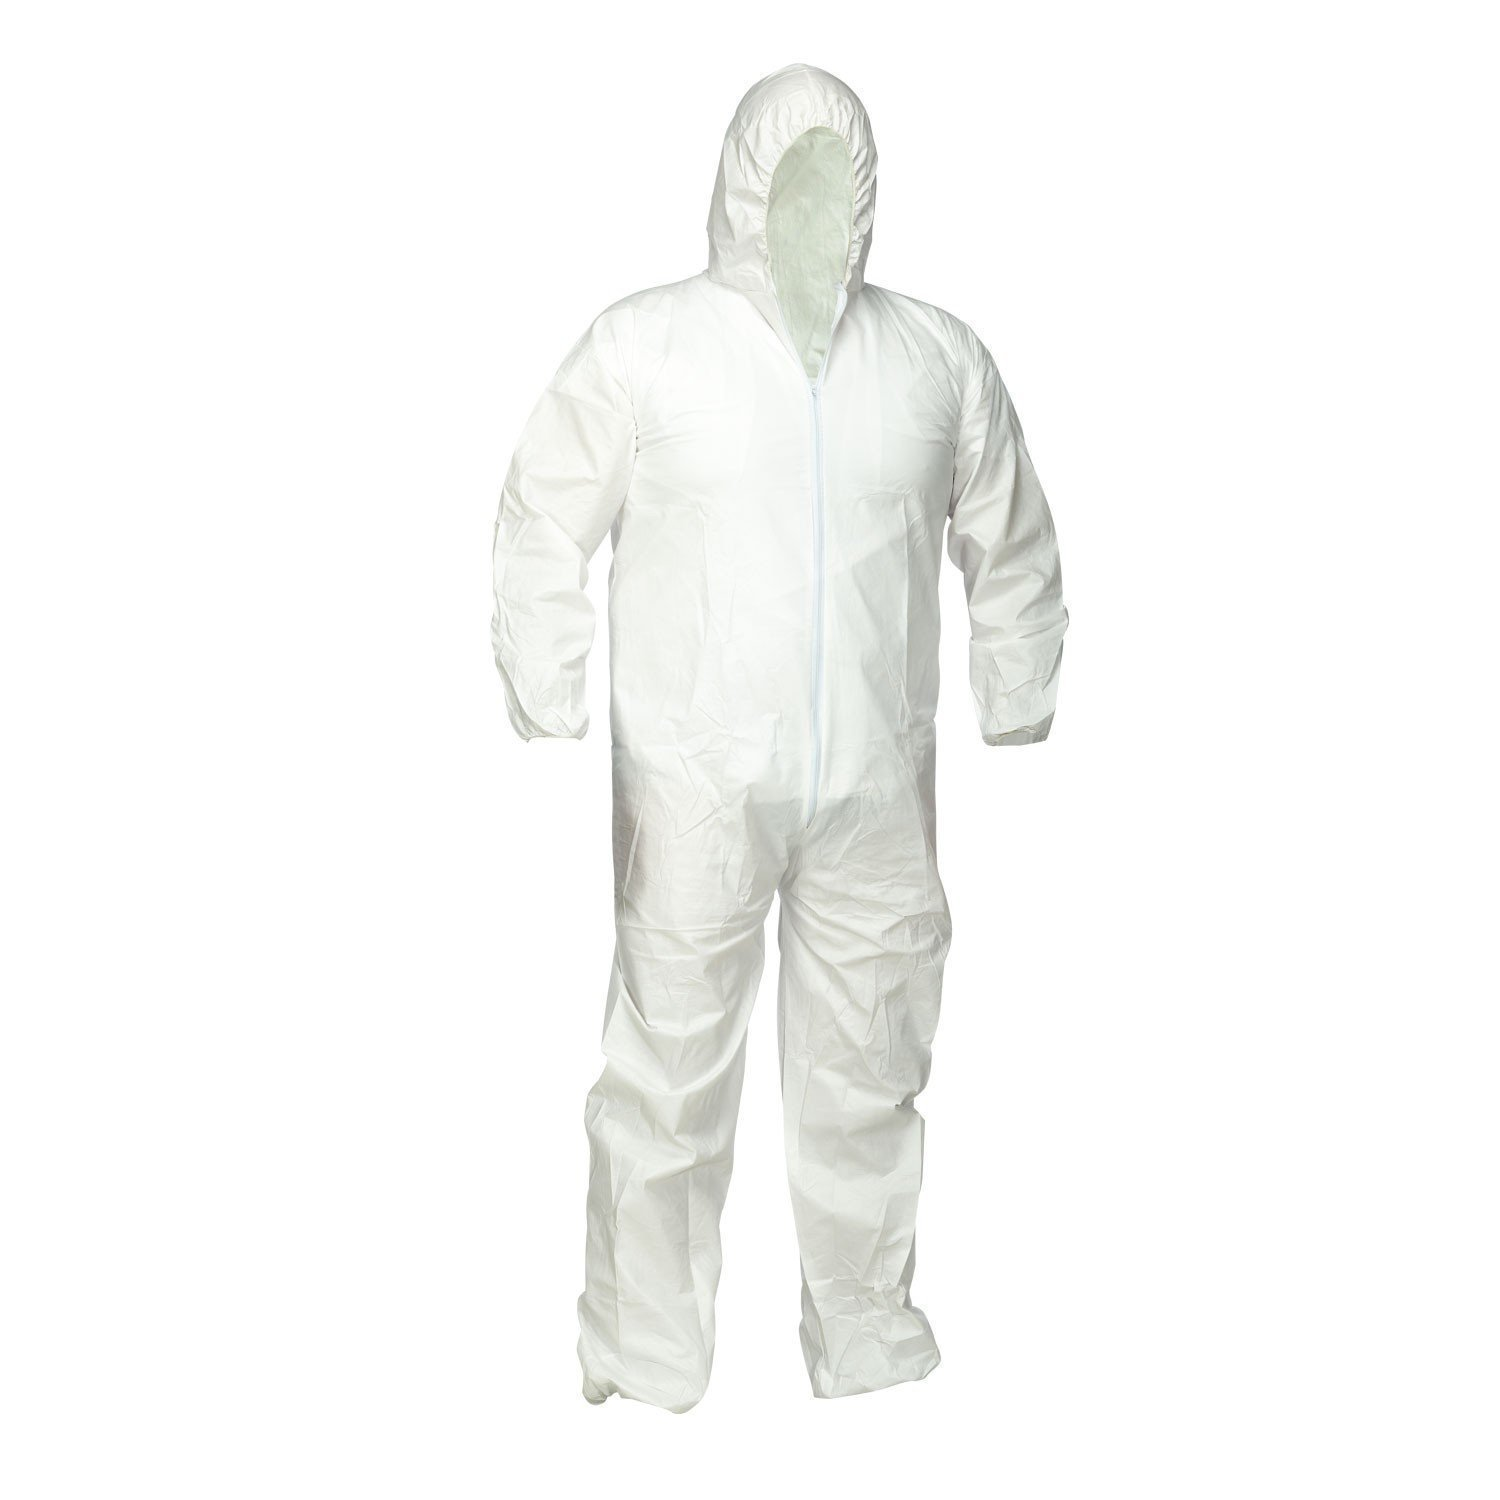 Disposable Coveralls - Tyvek - White - Large